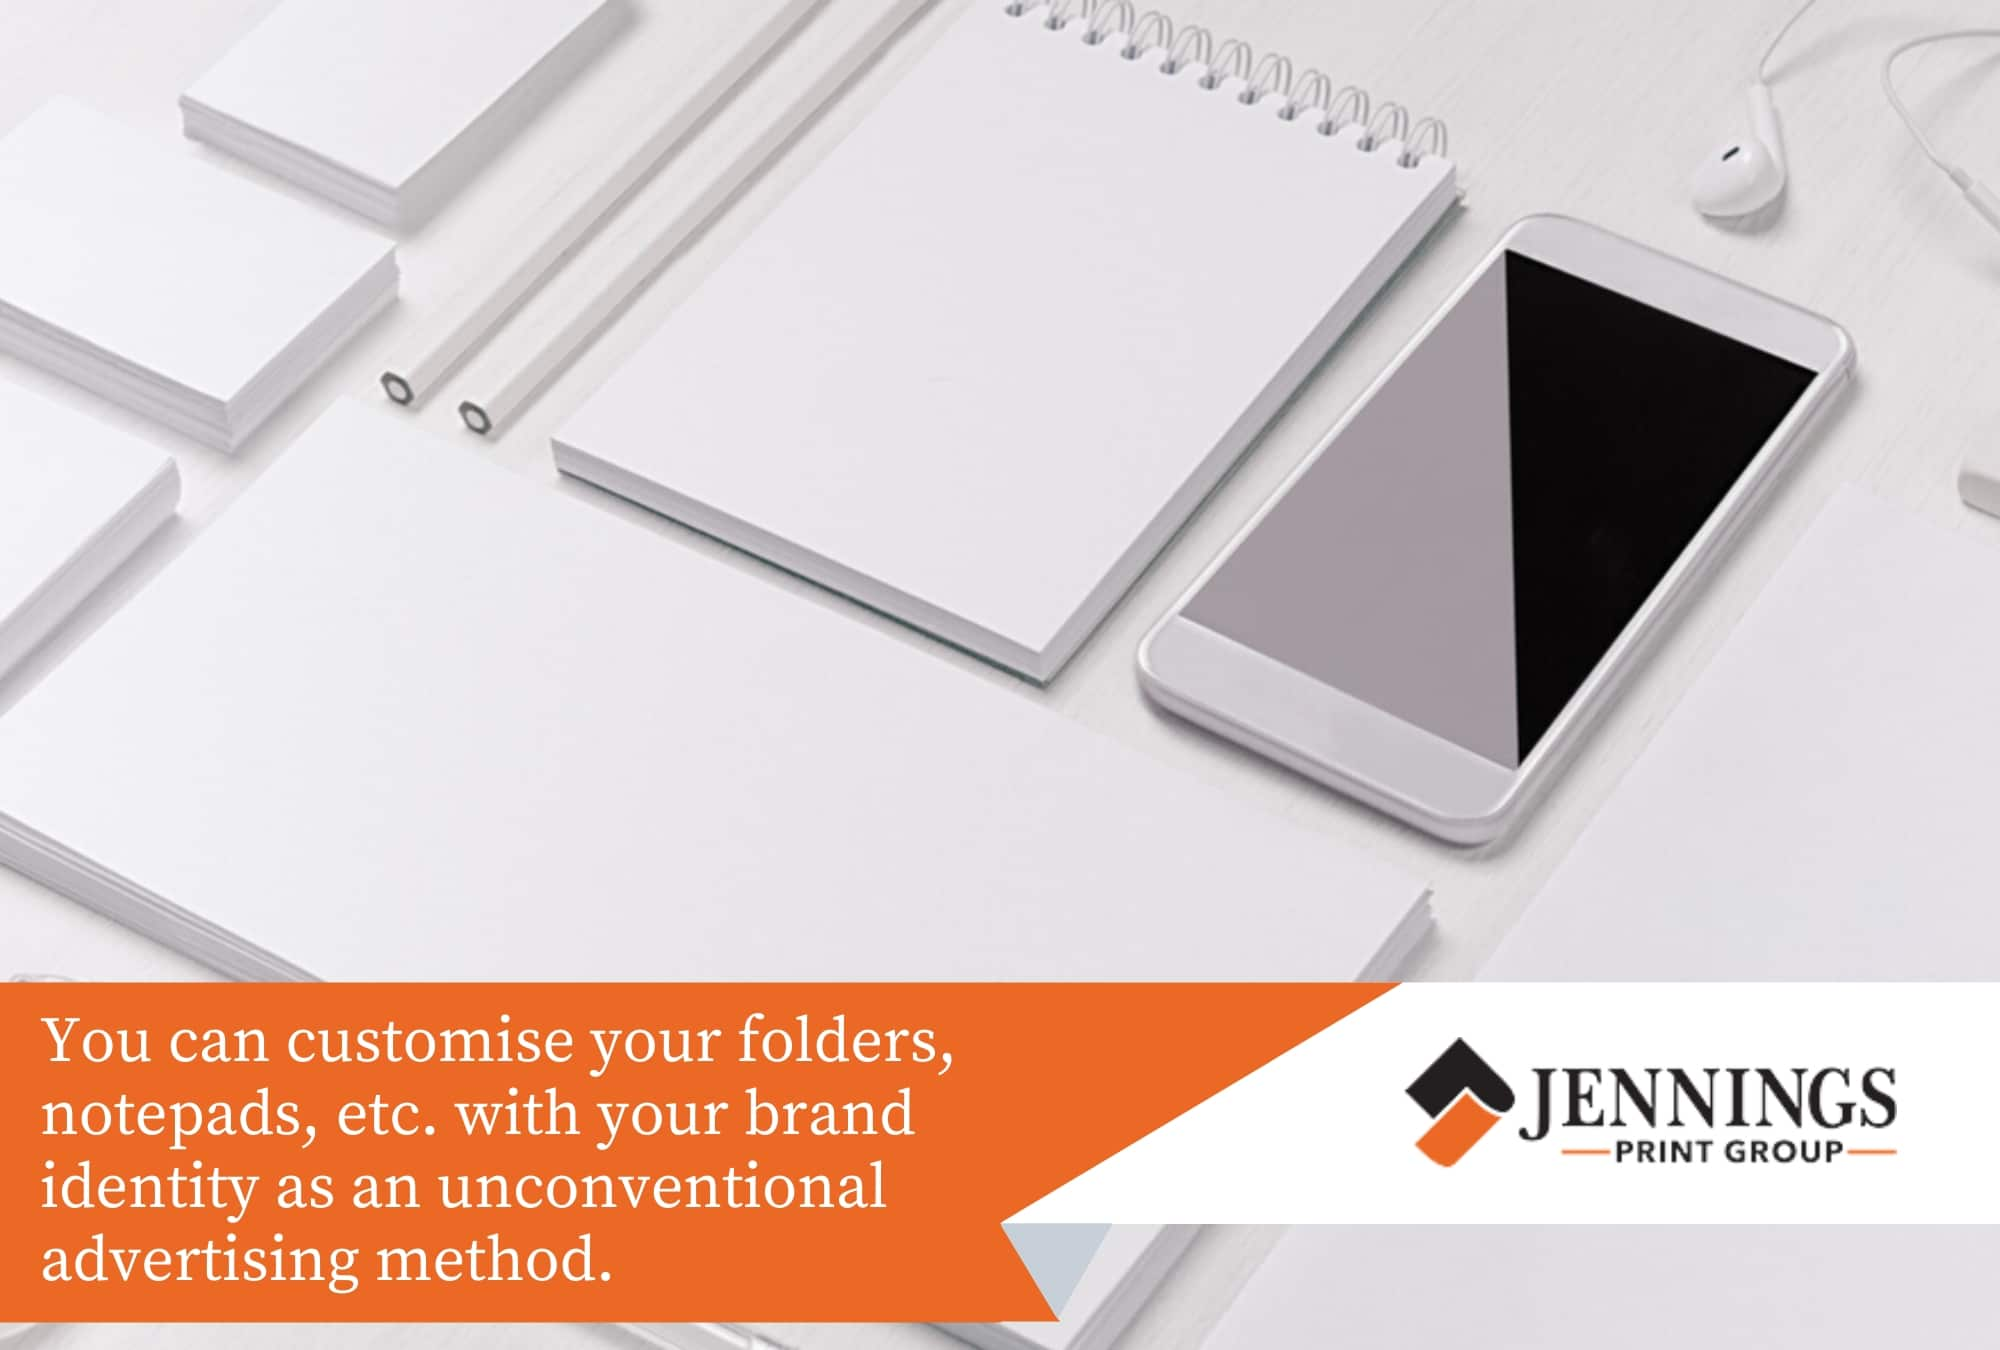 customize your folders with your brand